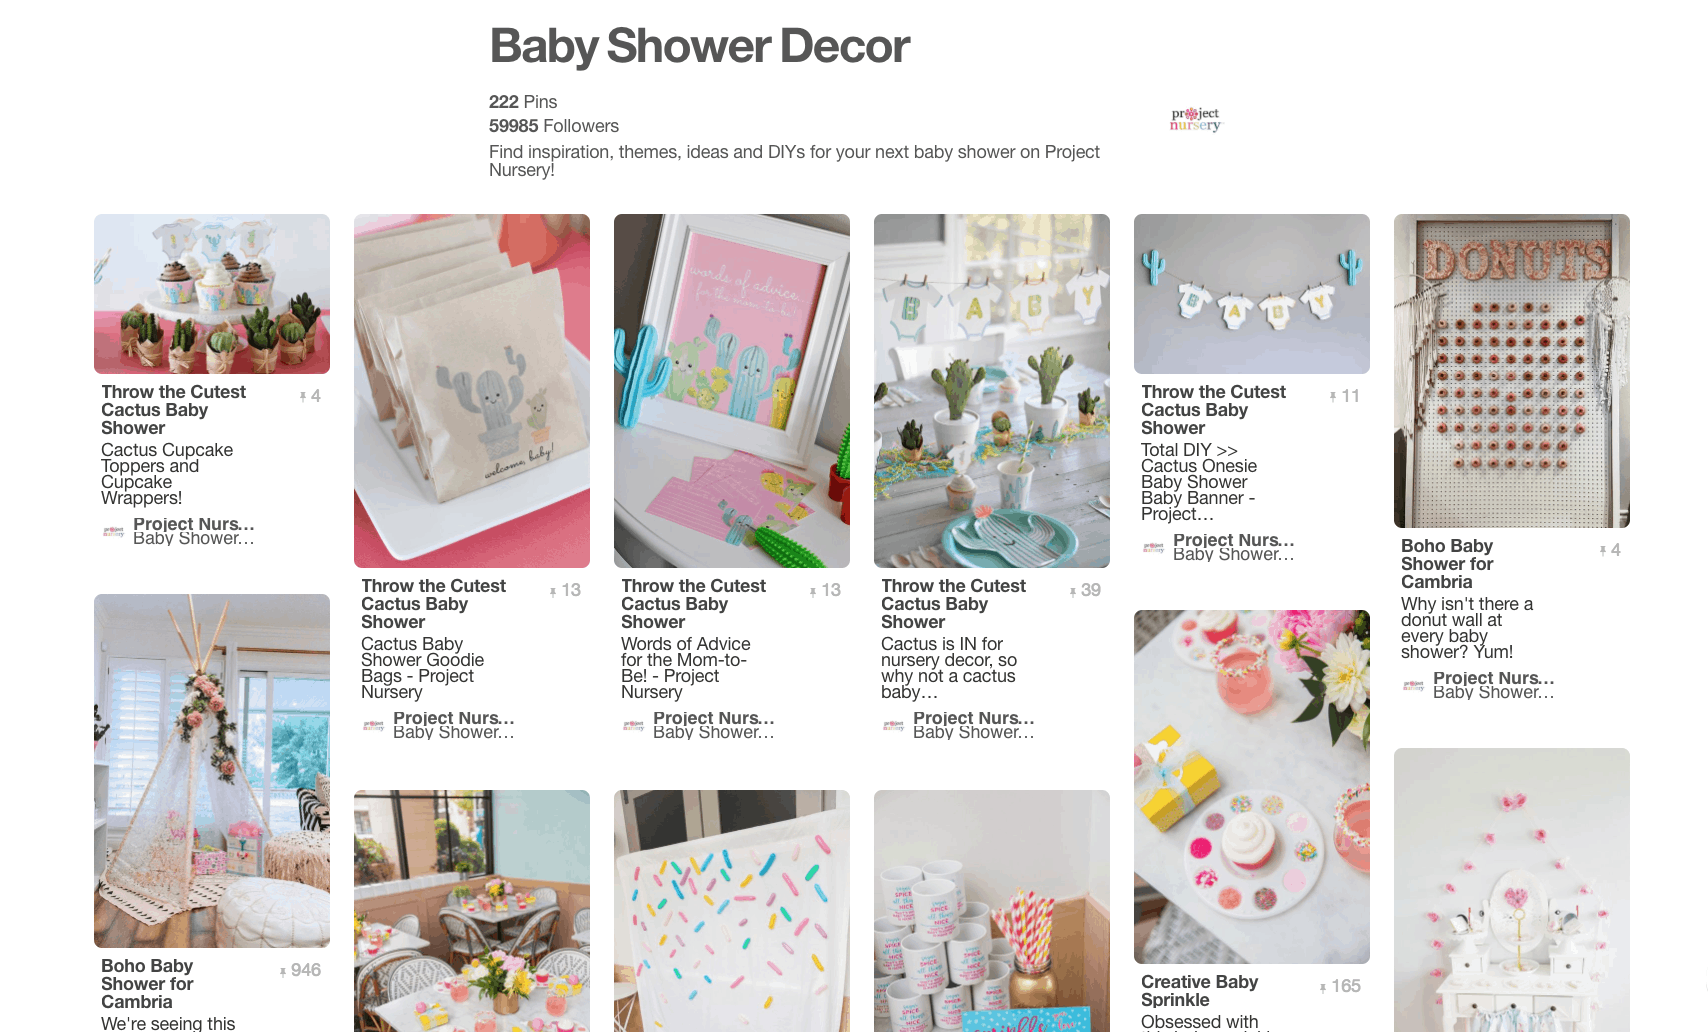 Collage of baby shower decor ideas.